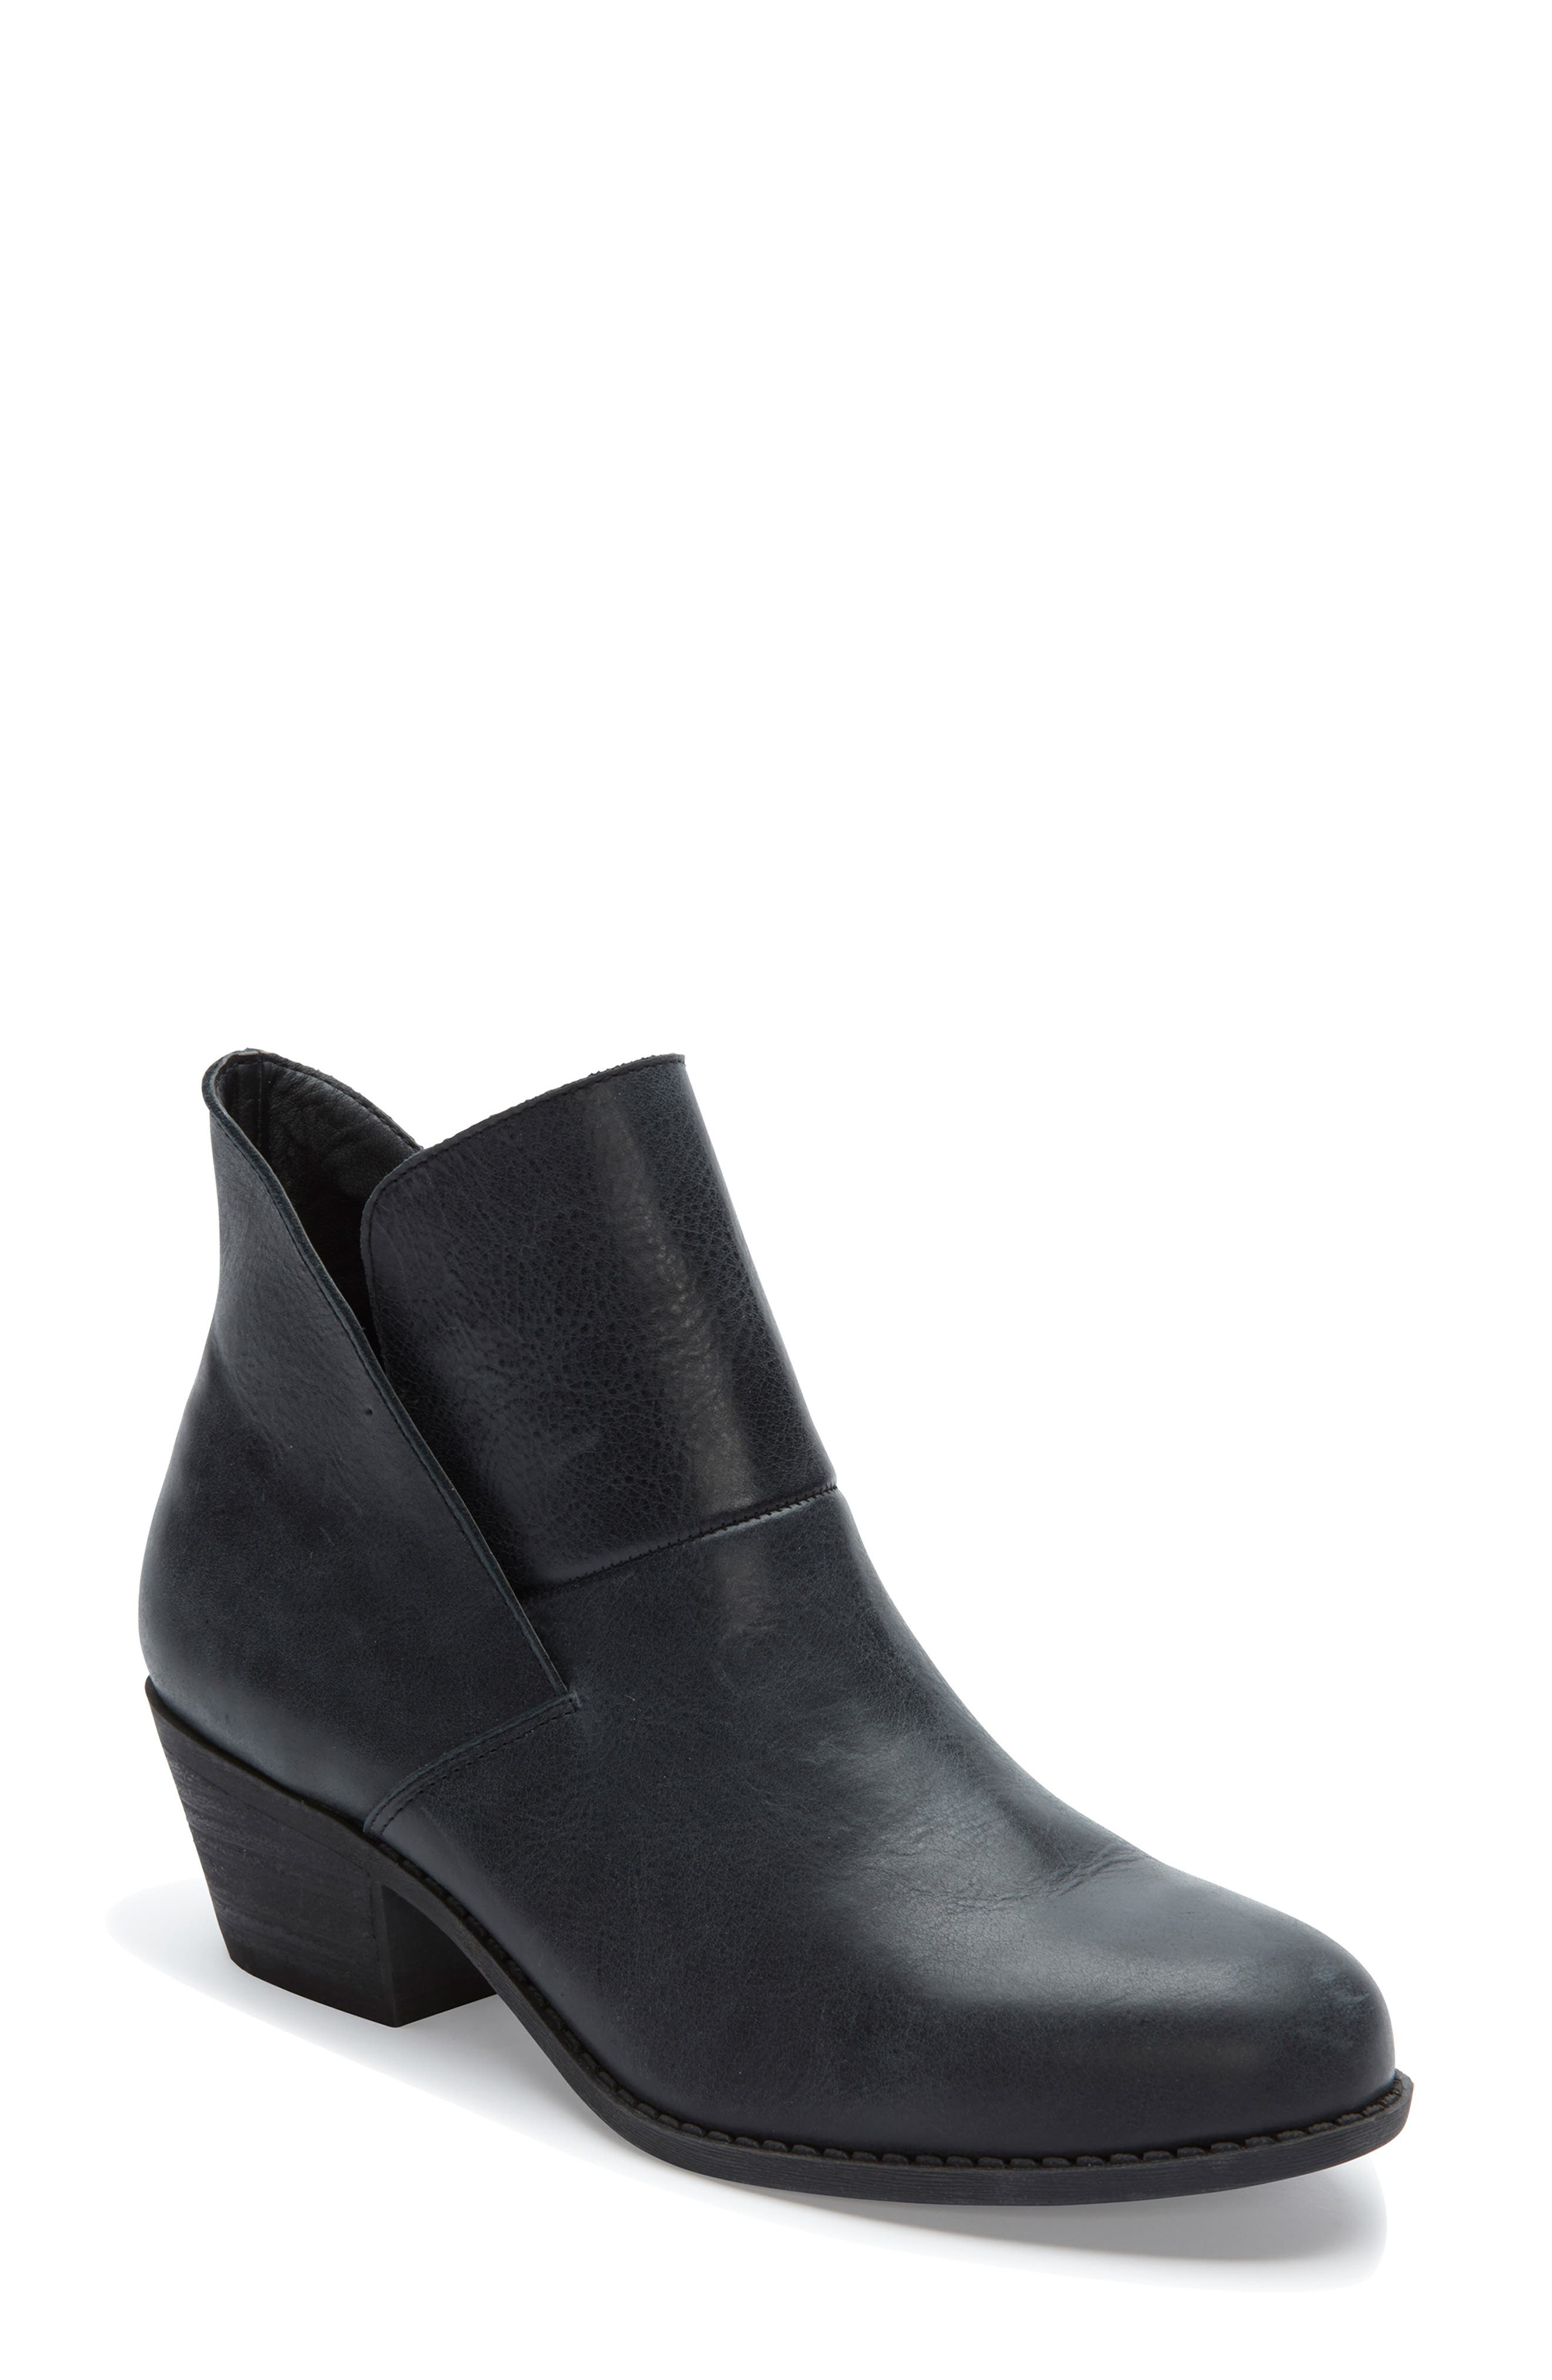 Me Too Zena Ankle Boot,                             Main thumbnail 1, color,                             BLACK LEATHER